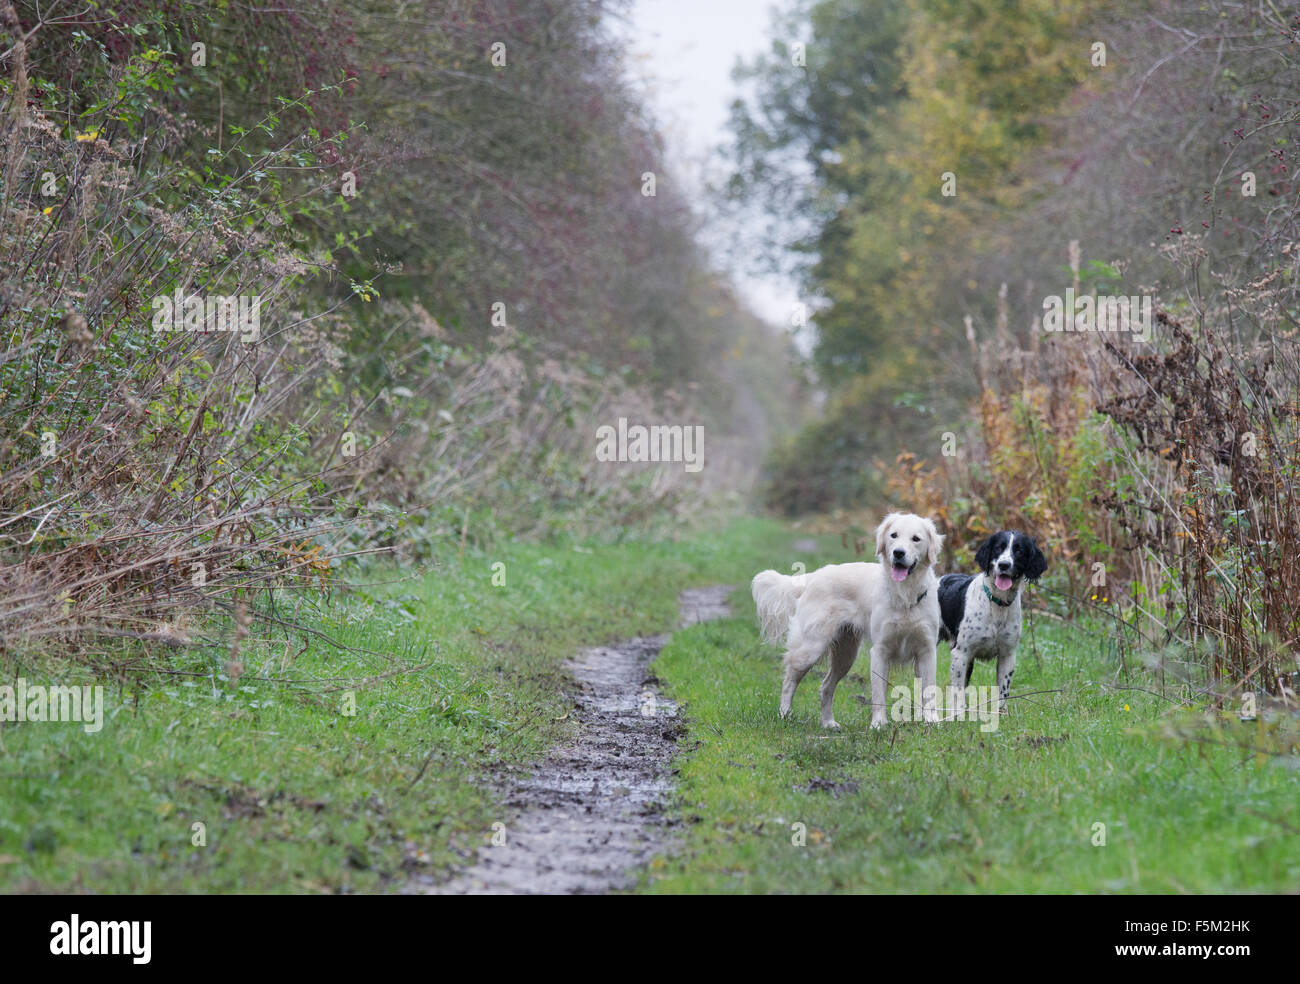 a Golden Retriever and springer spaniel working dogs - Stock Image